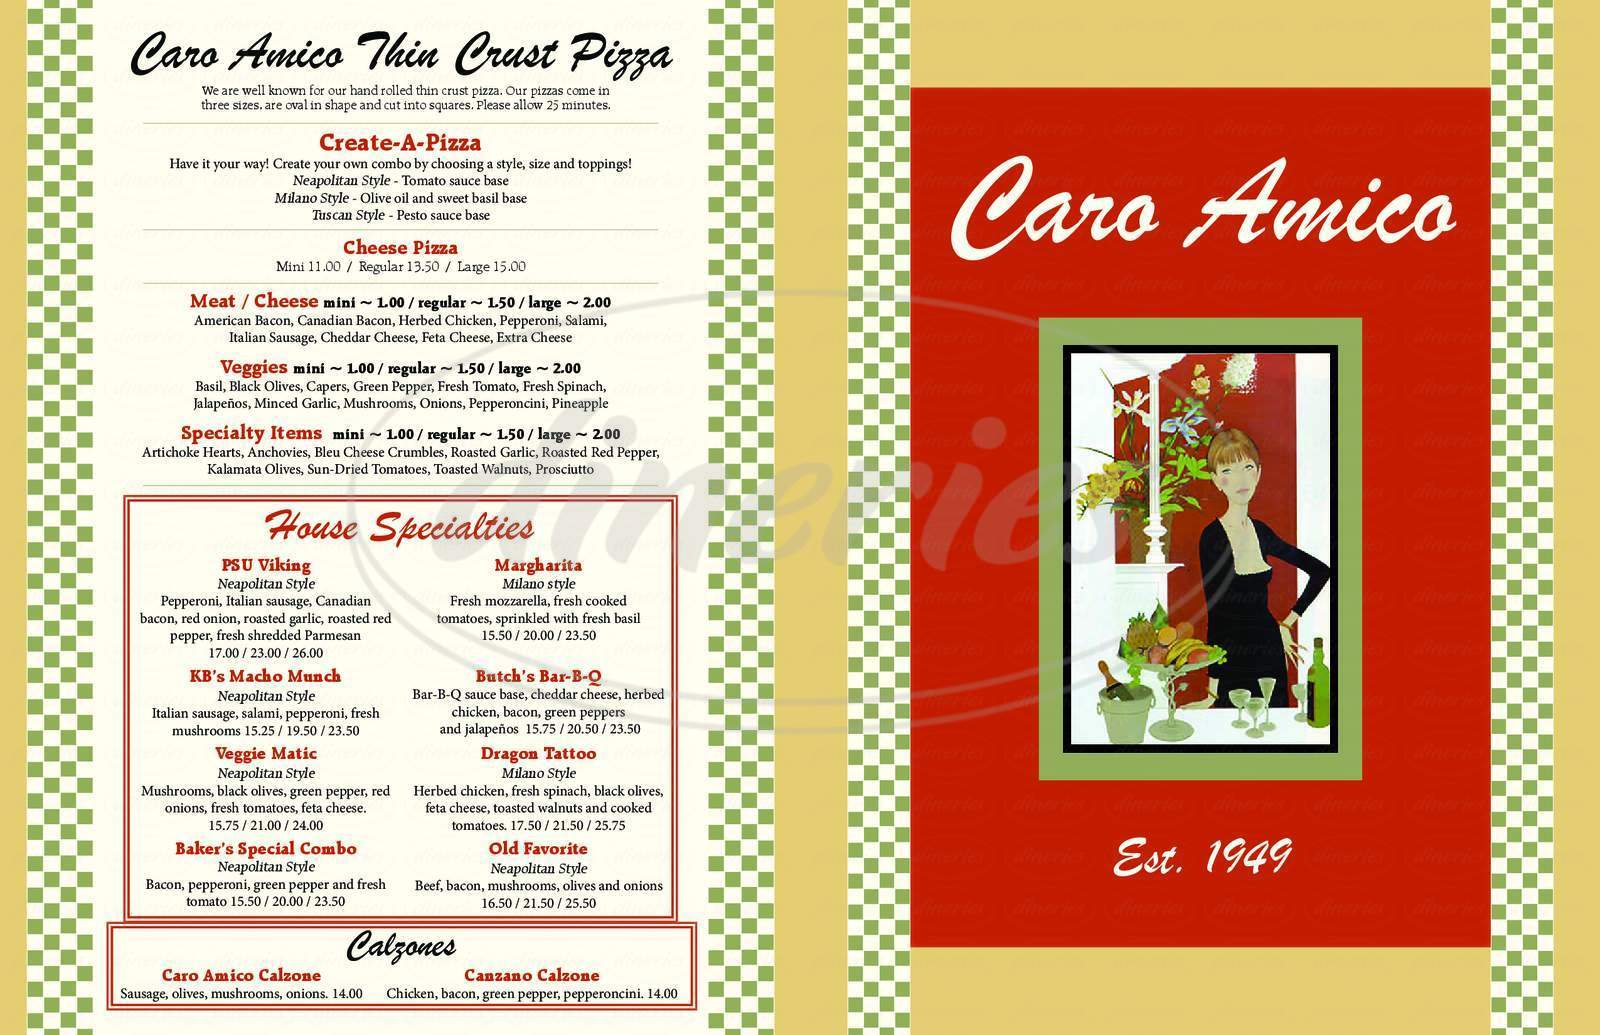 menu for Caro Amico Italian Cafe